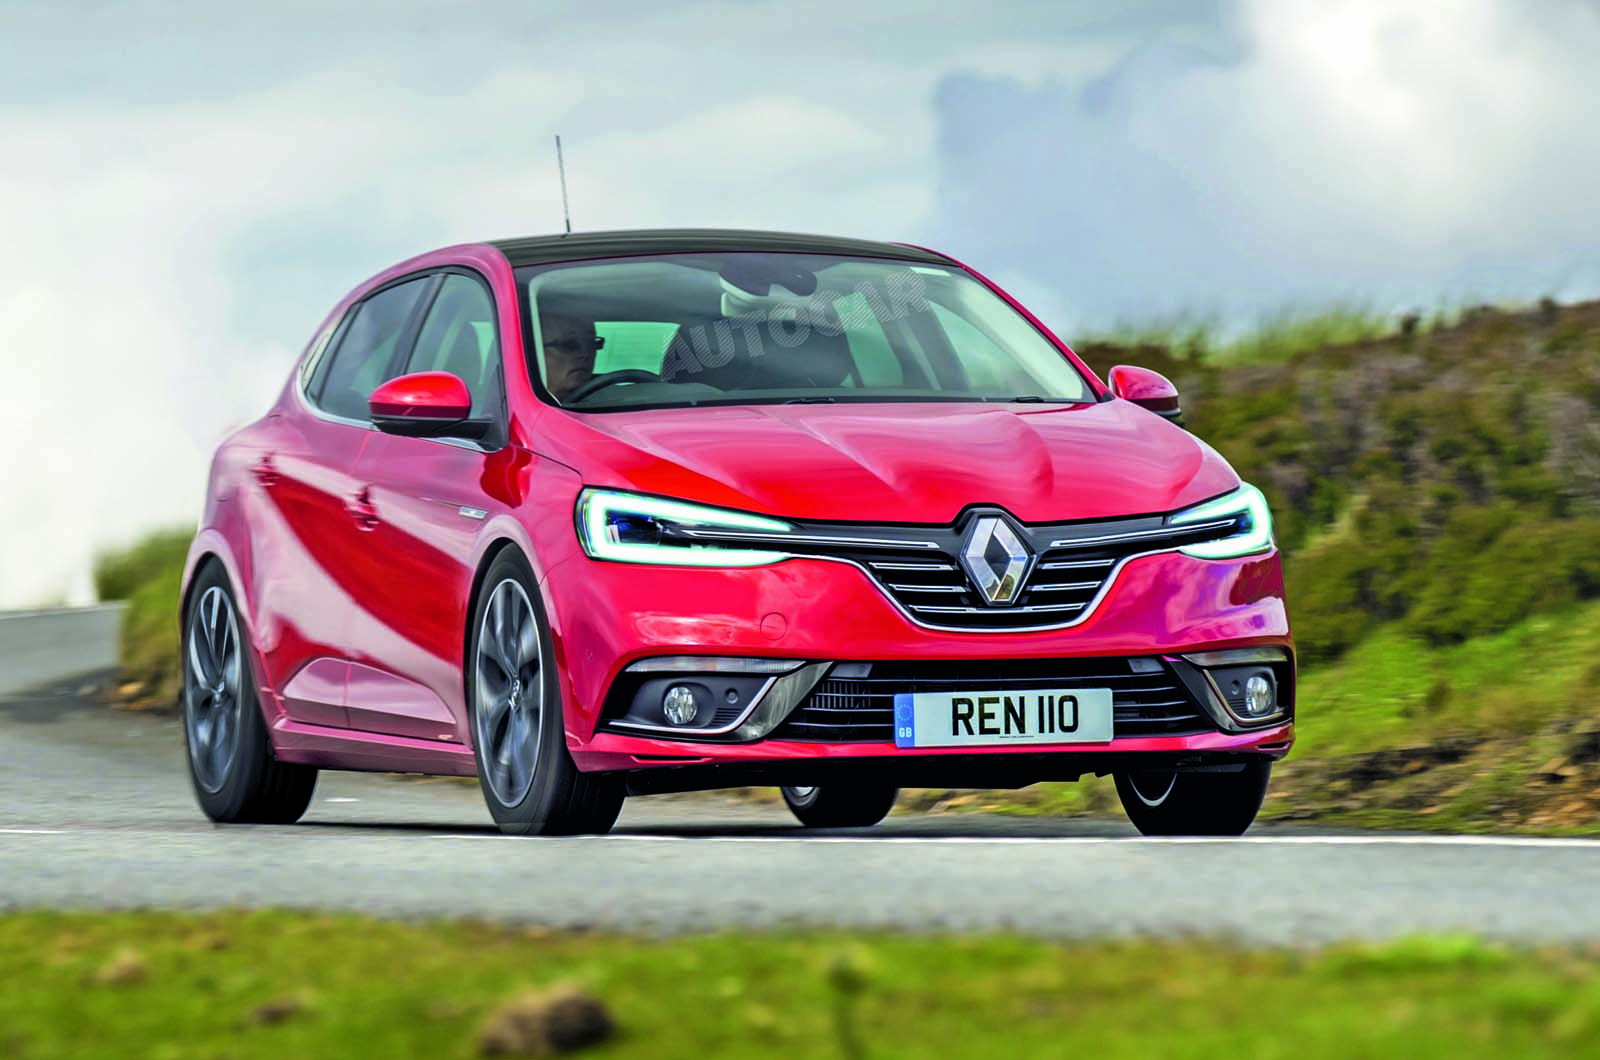 48 Concept of 2019 Renault Sandero First Drive for 2019 Renault Sandero